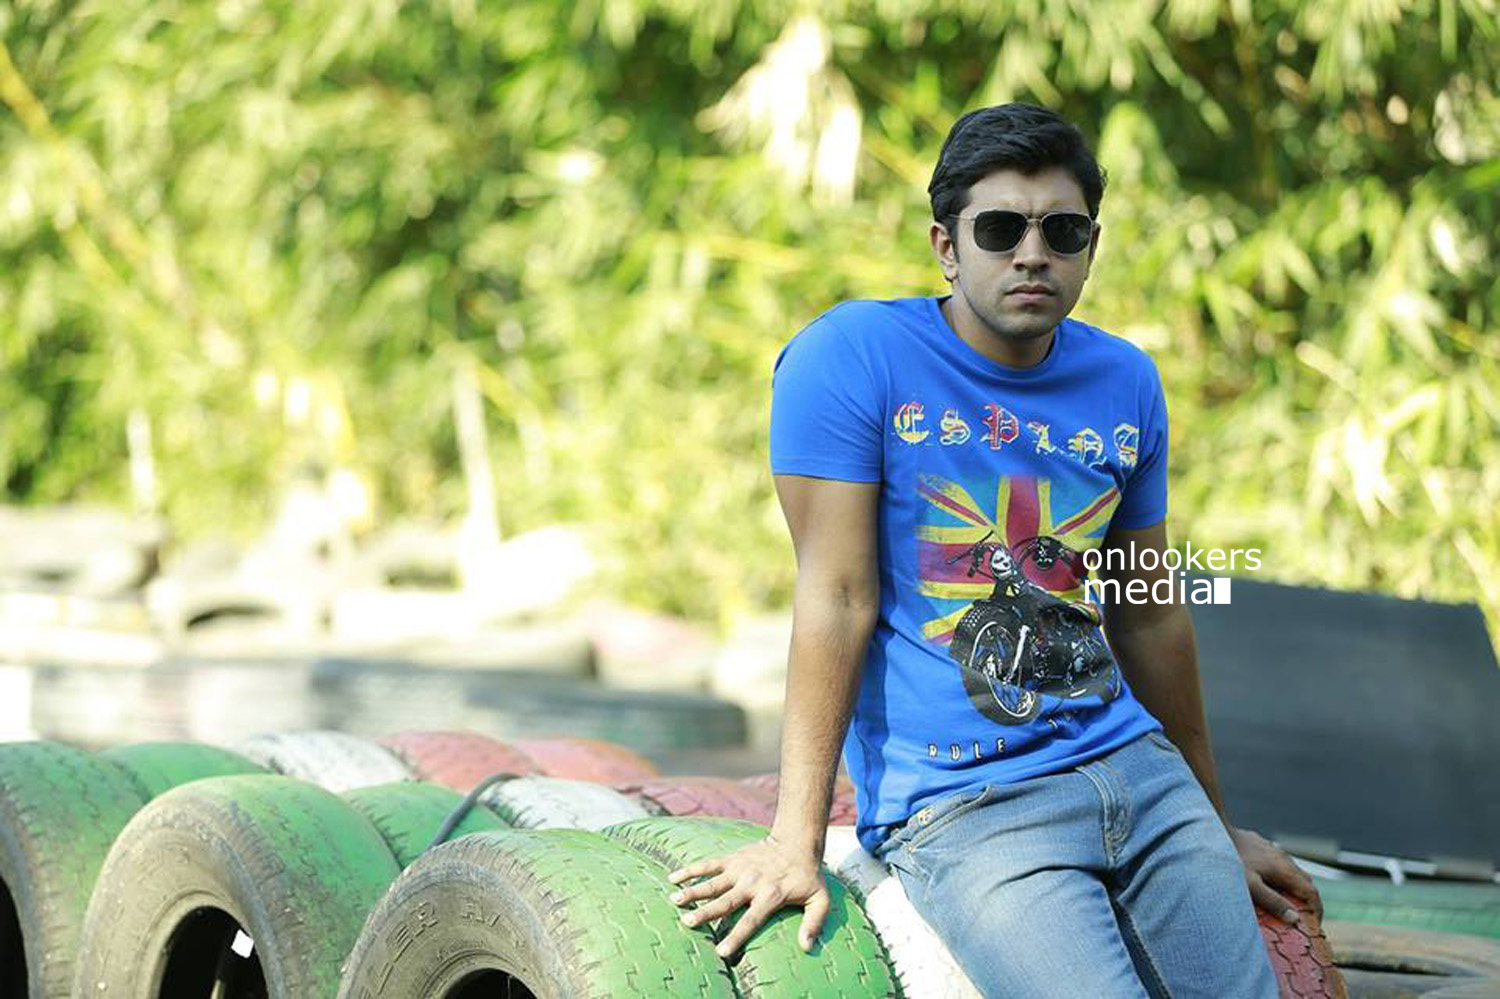 http://onlookersmedia.in/wp-content/uploads/2015/04/Nivin-Pauly-Stills-Images-Photos-Malayalam-Movie-2015-Onlookers-Media-17.jpg